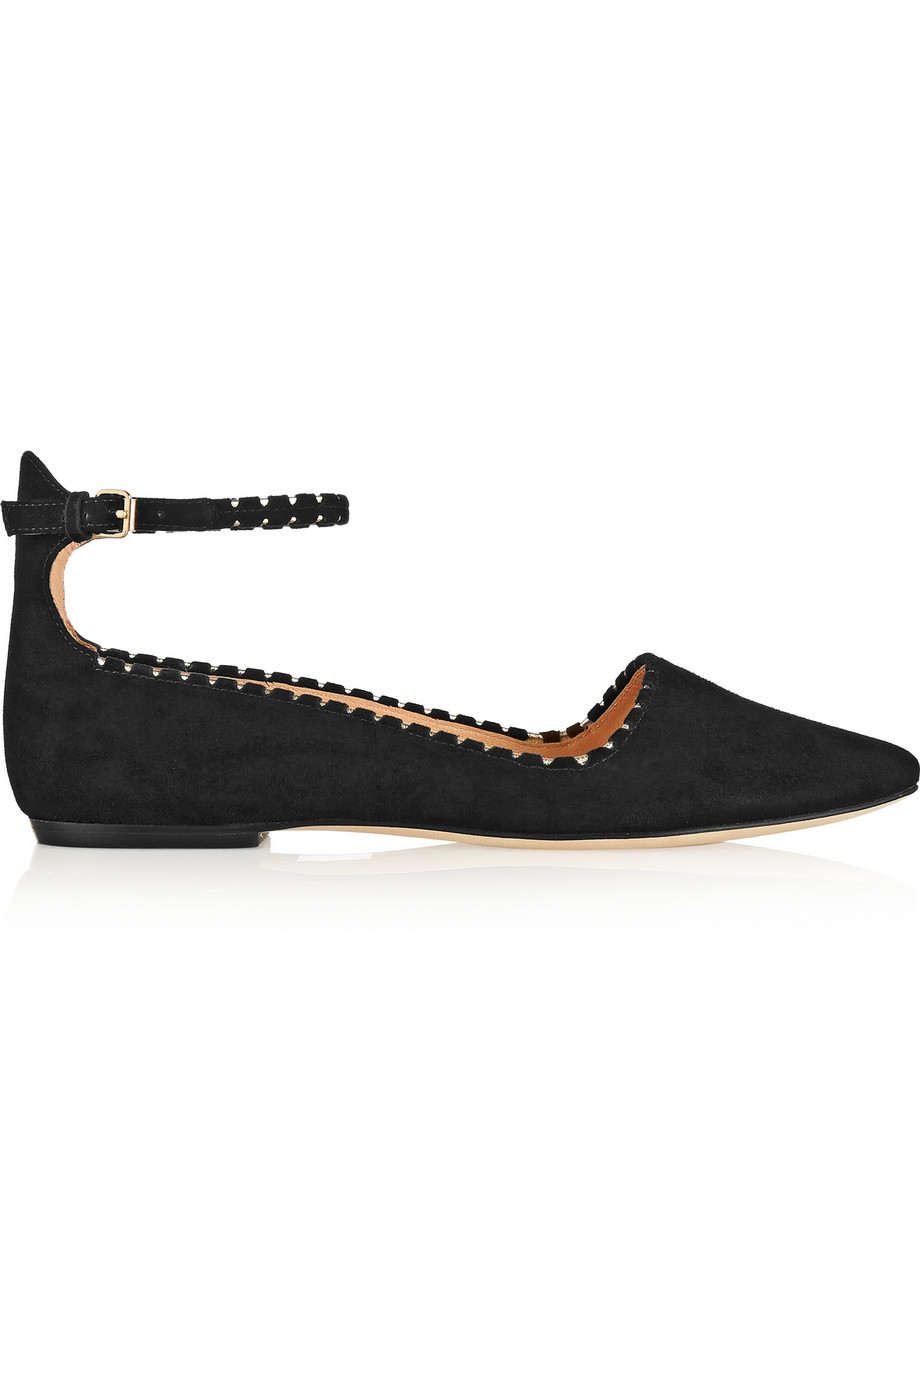 Sigerson Morrison Haden suede flats – 50% at THE OUTNET.COM